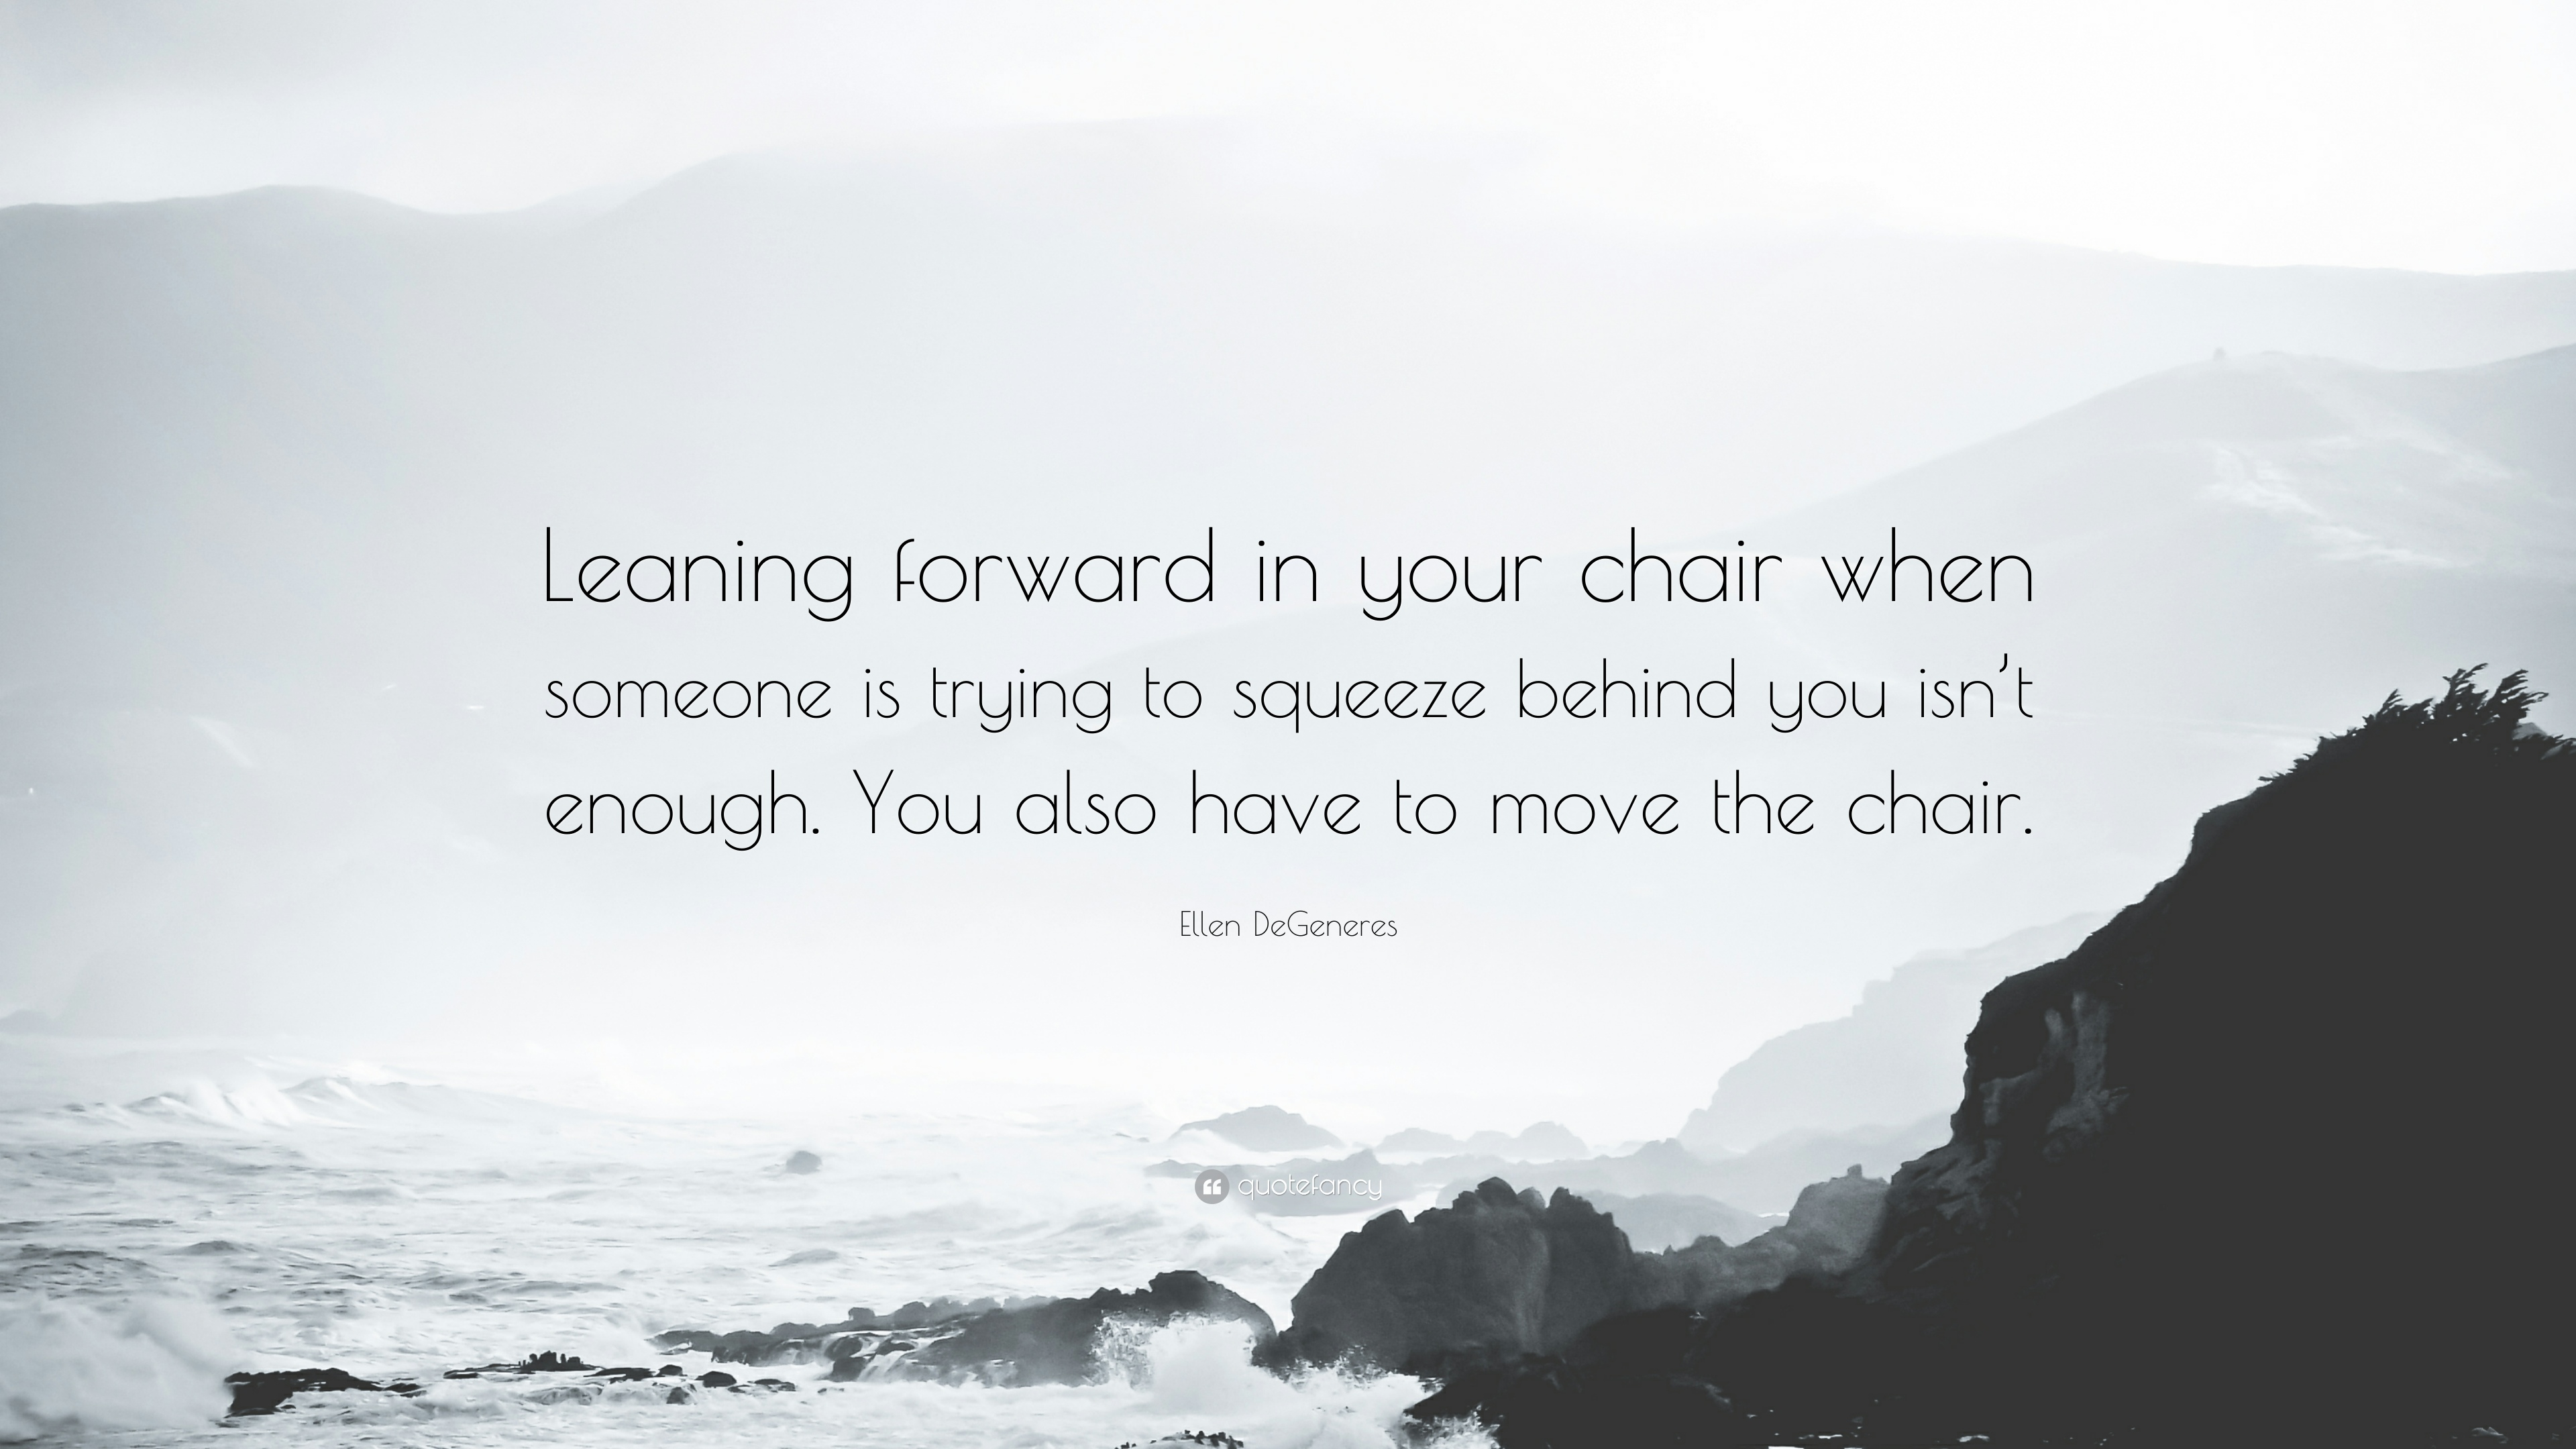 Behind the chair quotes - Ellen Degeneres Quote Leaning Forward In Your Chair When Someone Is Trying To Squeeze